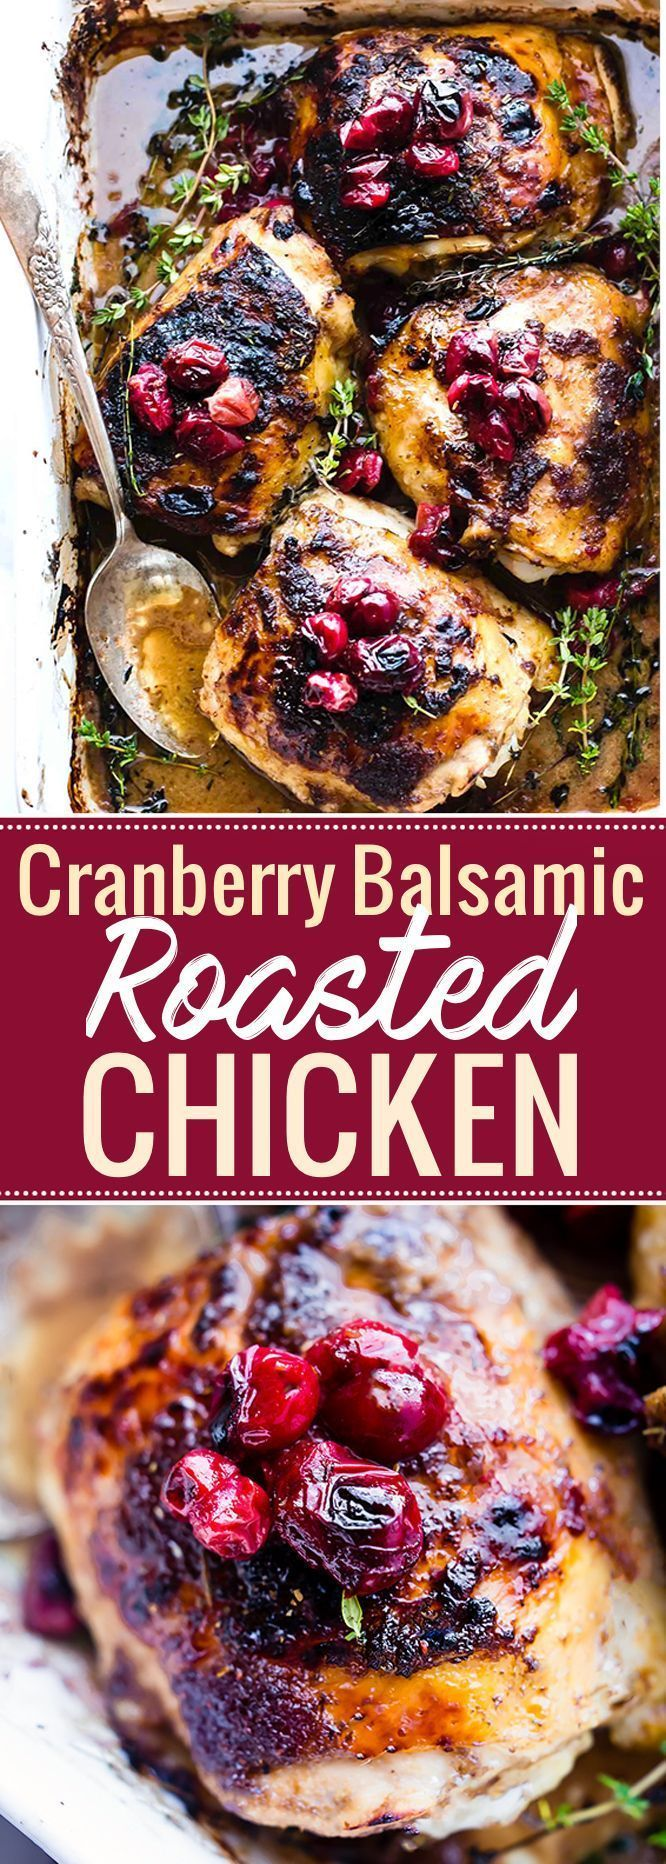 Balsamic Roasted Chicken with Cranberries prepped and cooked in ONE PAN! Yes, your holiday table is complete. This Paleo Cranberry Balsamic Roasted Chicken is a simple yet healthy dinner. A sweet tangy marinade makes this roasted chicken extra juicy and e